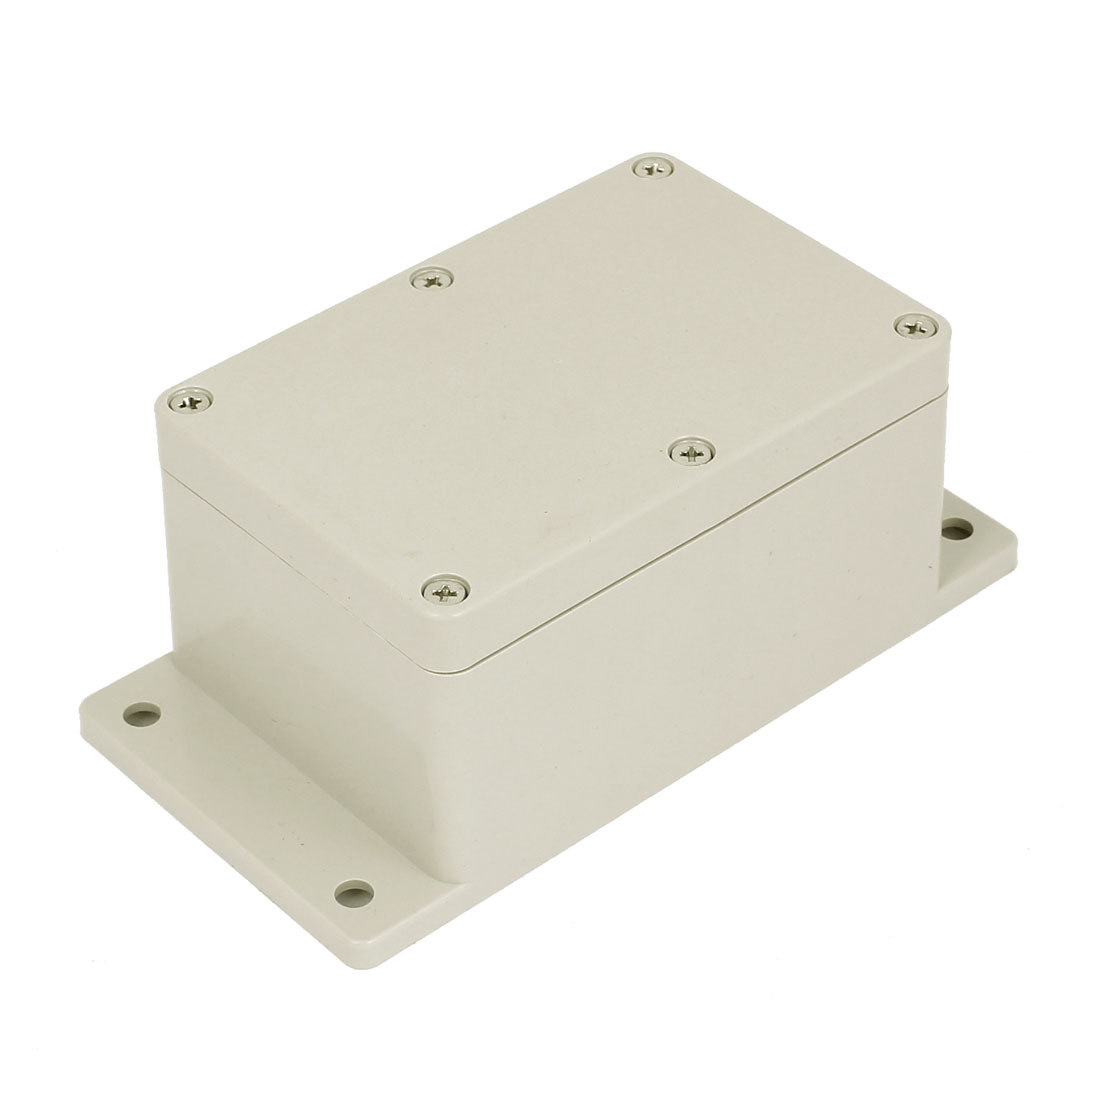 160mm x 80mm x 65mm Dustproof IP65 Sealed Joint DIY Project Electrical Junction Box